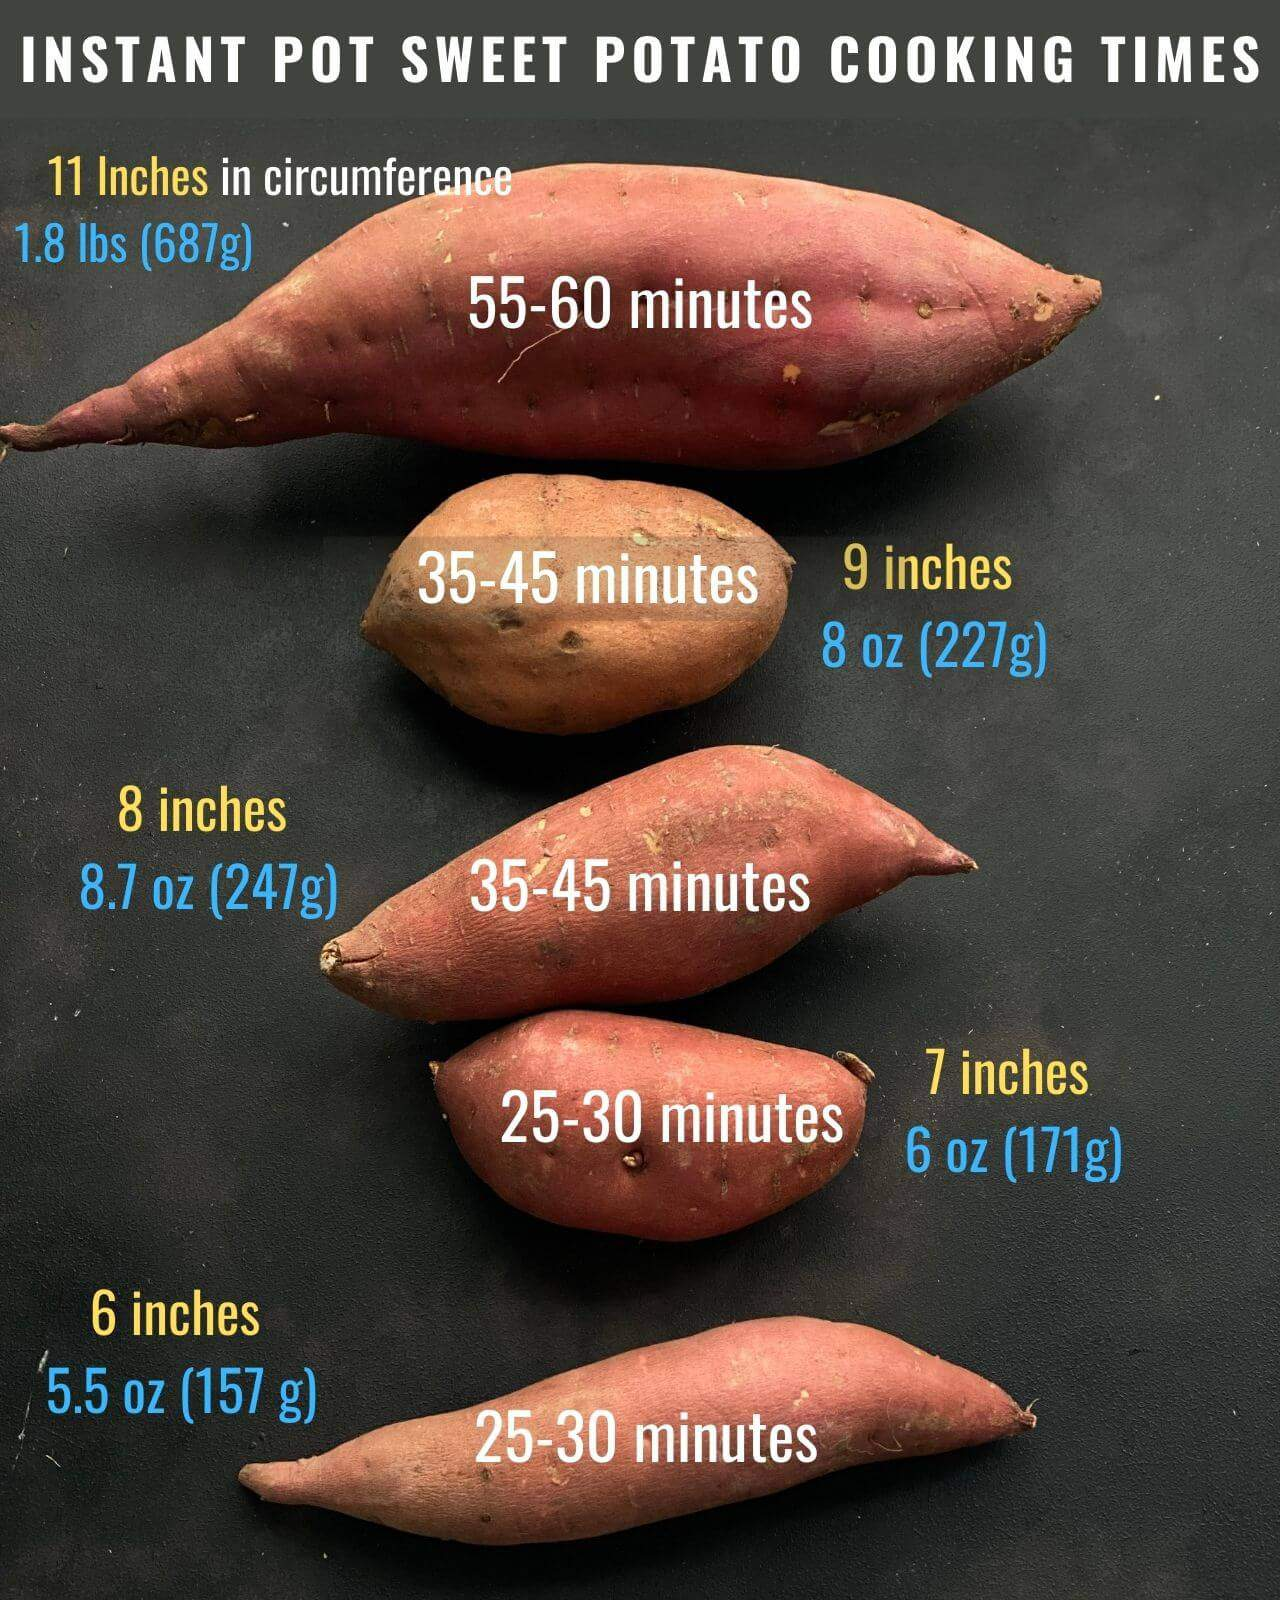 A visual guide of the different sized sweet potatoes from largest at the top and smallest at the bottom.